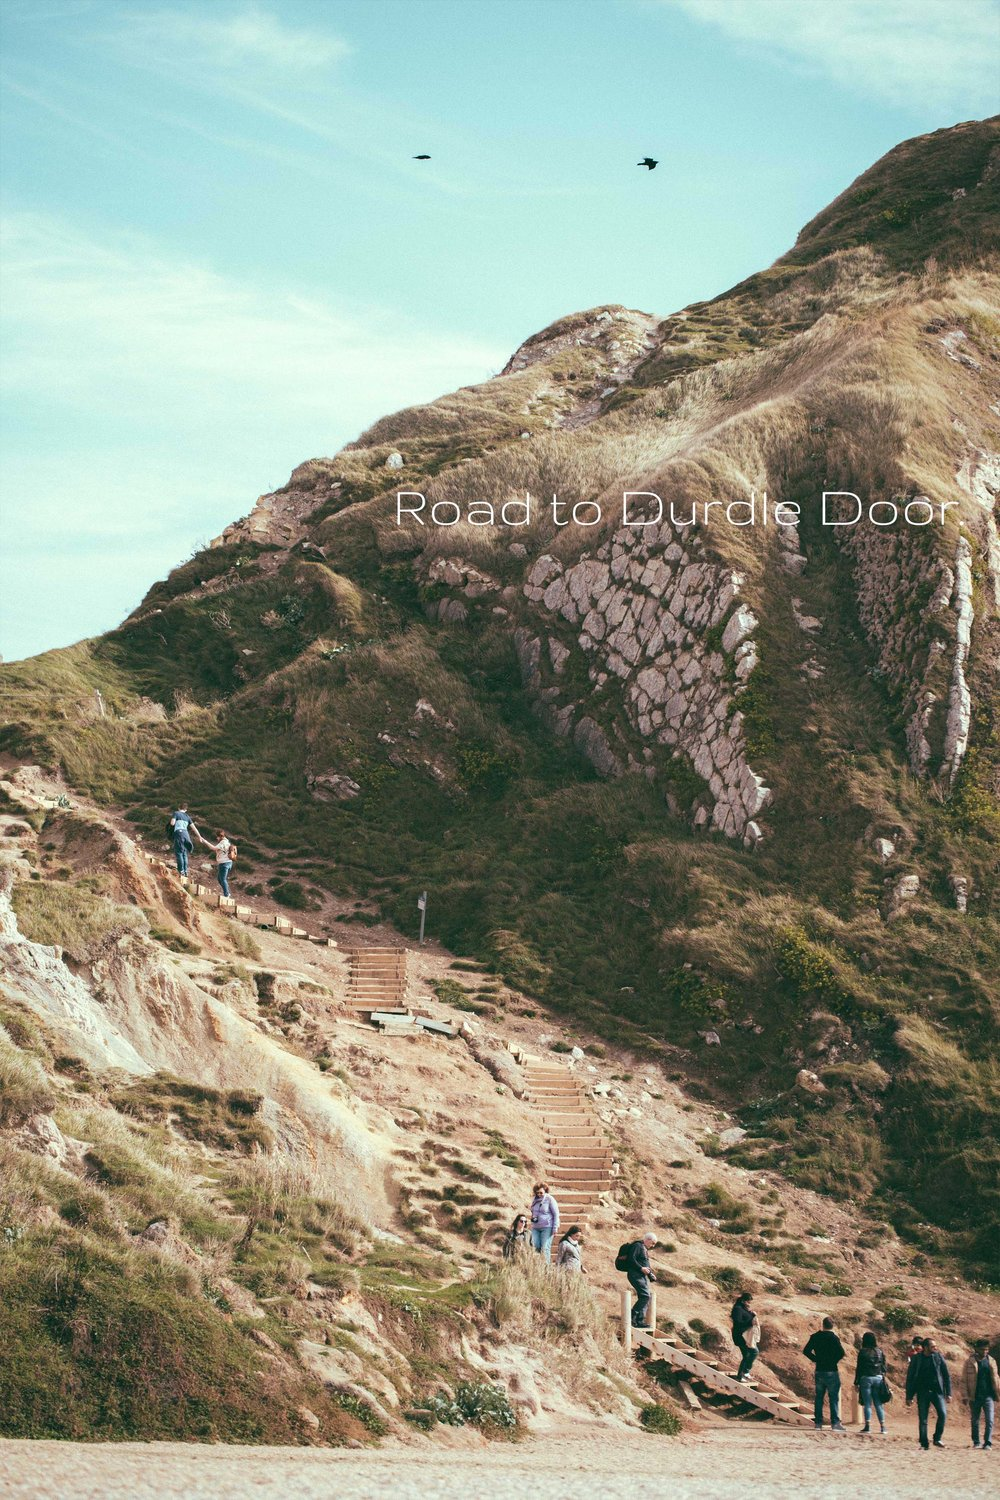 Road to Durdle Door. - Durdle Door is the most photographed landmark along the World Heritage Site,Jurassic Coast. This series chronicles my journey from an Instagram photo I came across to sitting on the beach of this magnificent landmark on a chilly afternoon.Click on image to enter.